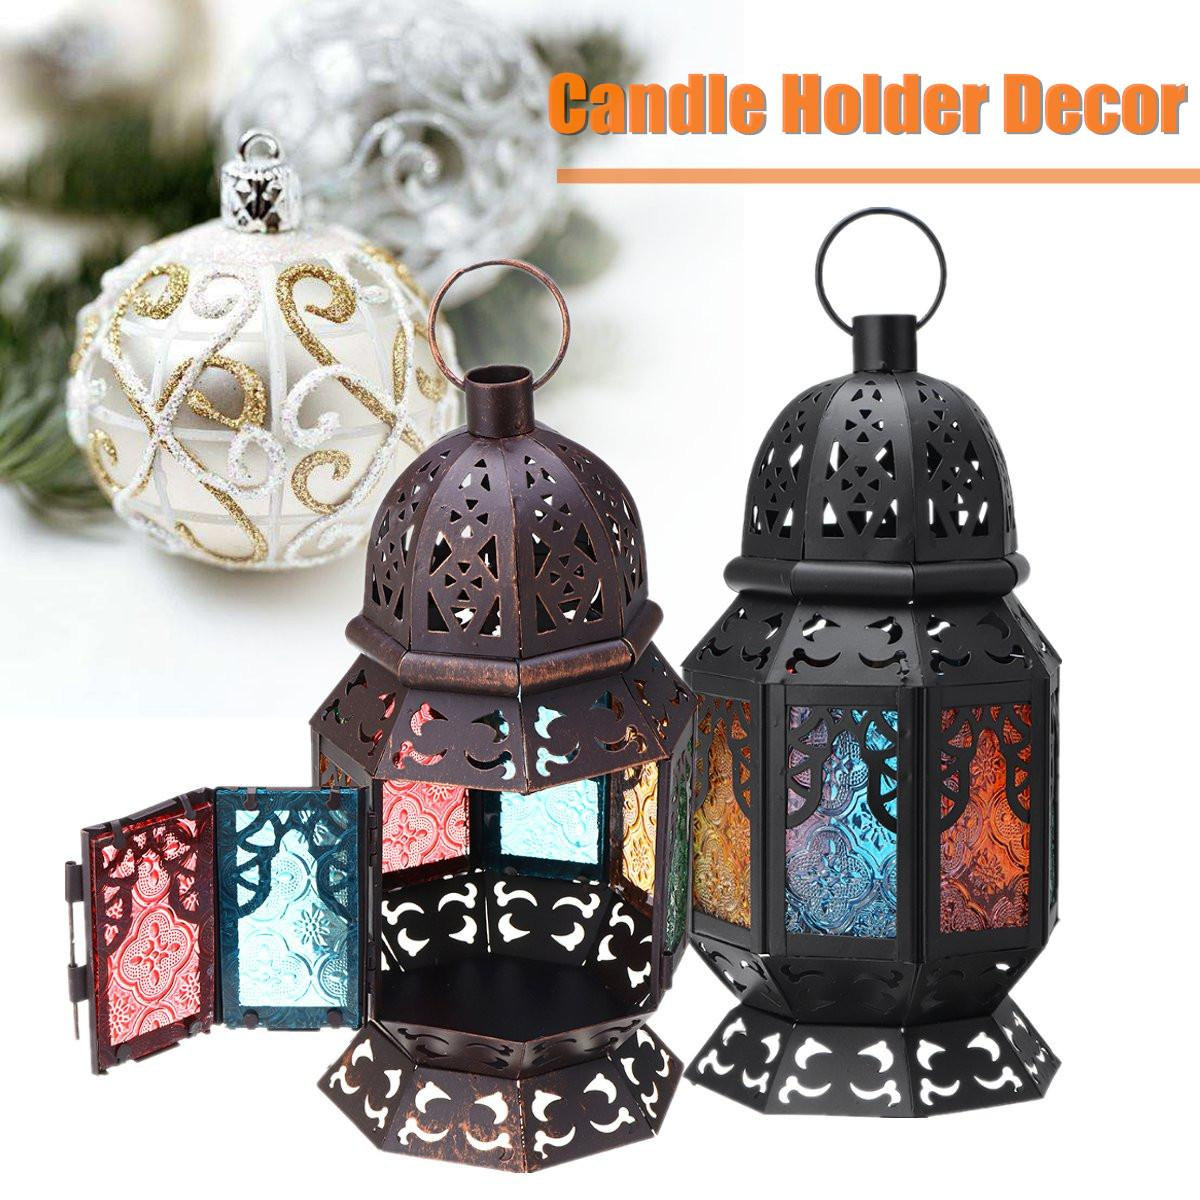 Candid Multi Coloured Glass Moroccan Hanging Lantern Tea Lights Candle Holder Wedding Party Ornament Home Decorations Gifts 13x13x26cm Home & Garden